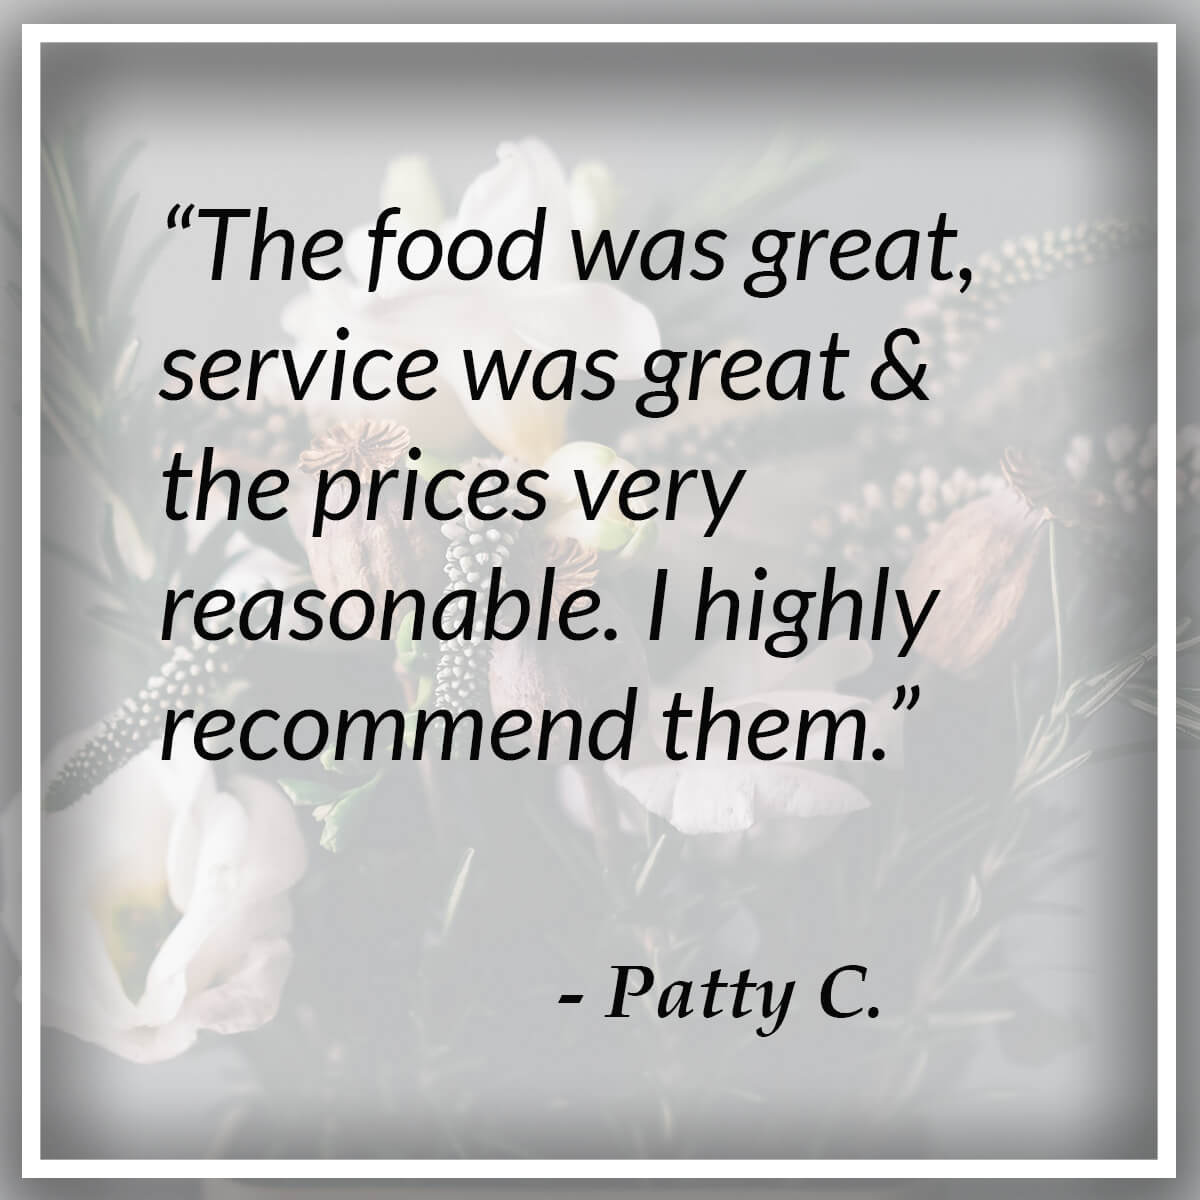 The food was great & service was great & the prices very reasonable. I highly recommend them. - Patty C.